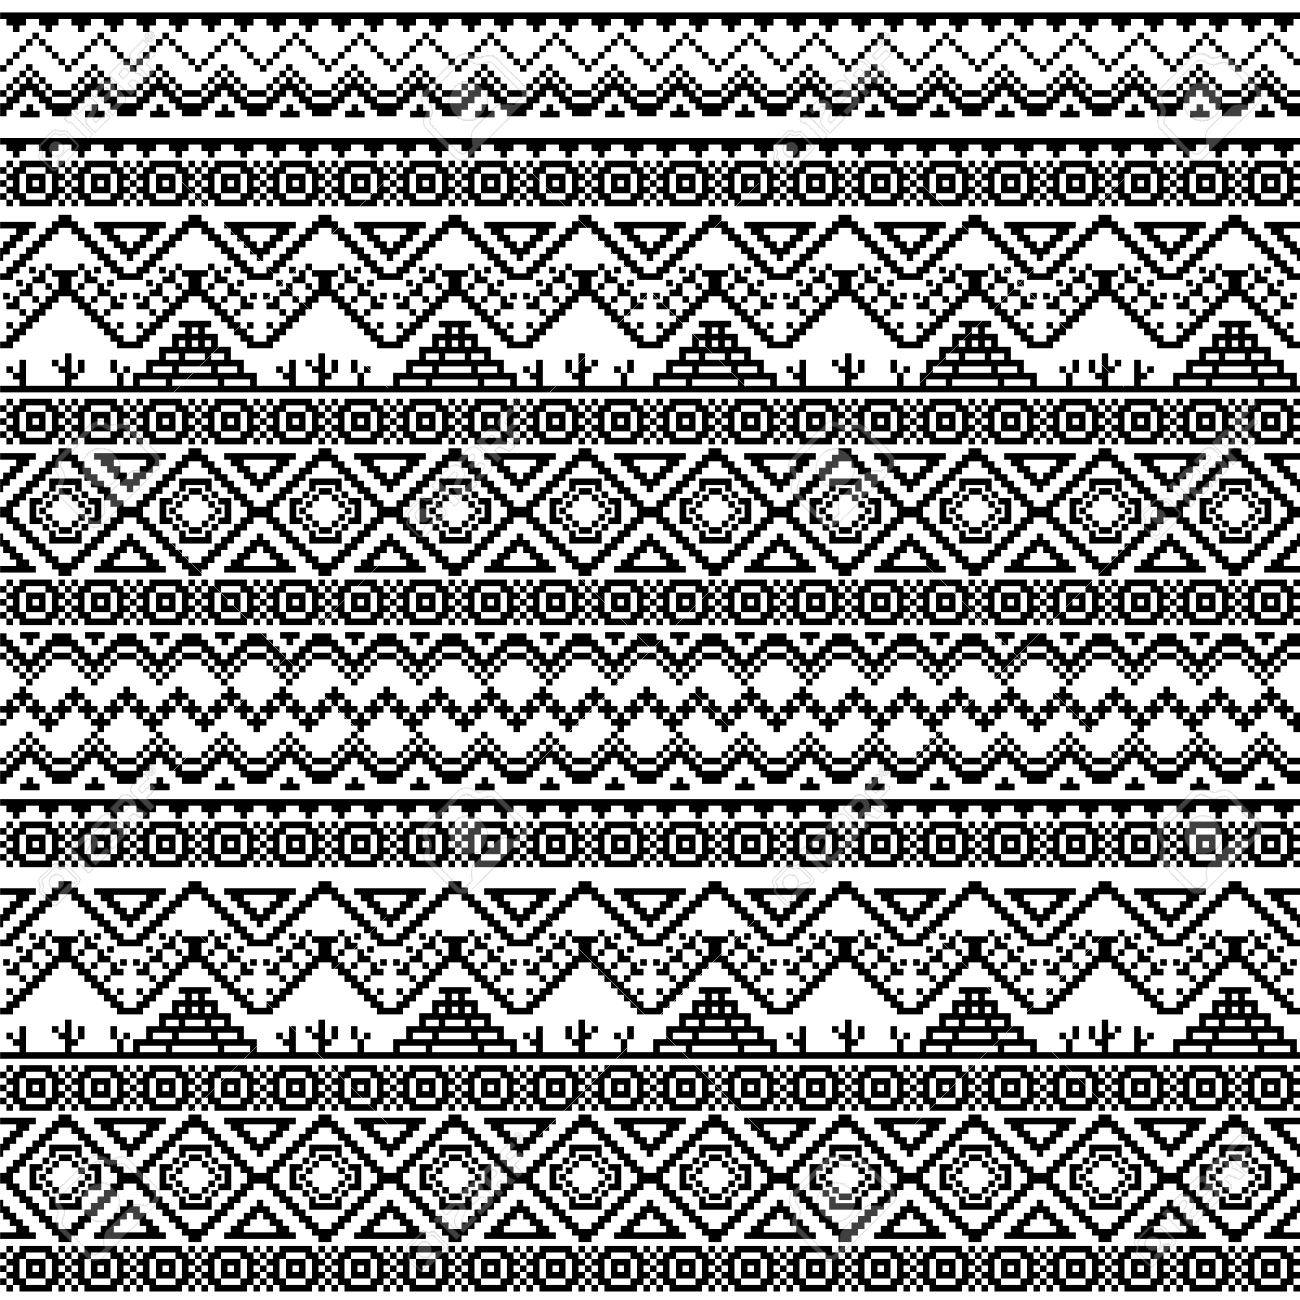 Seamless Boho Pattern Tribal Aztec Stylized Ornament With Cactuses And Chichen Itza Pyramid